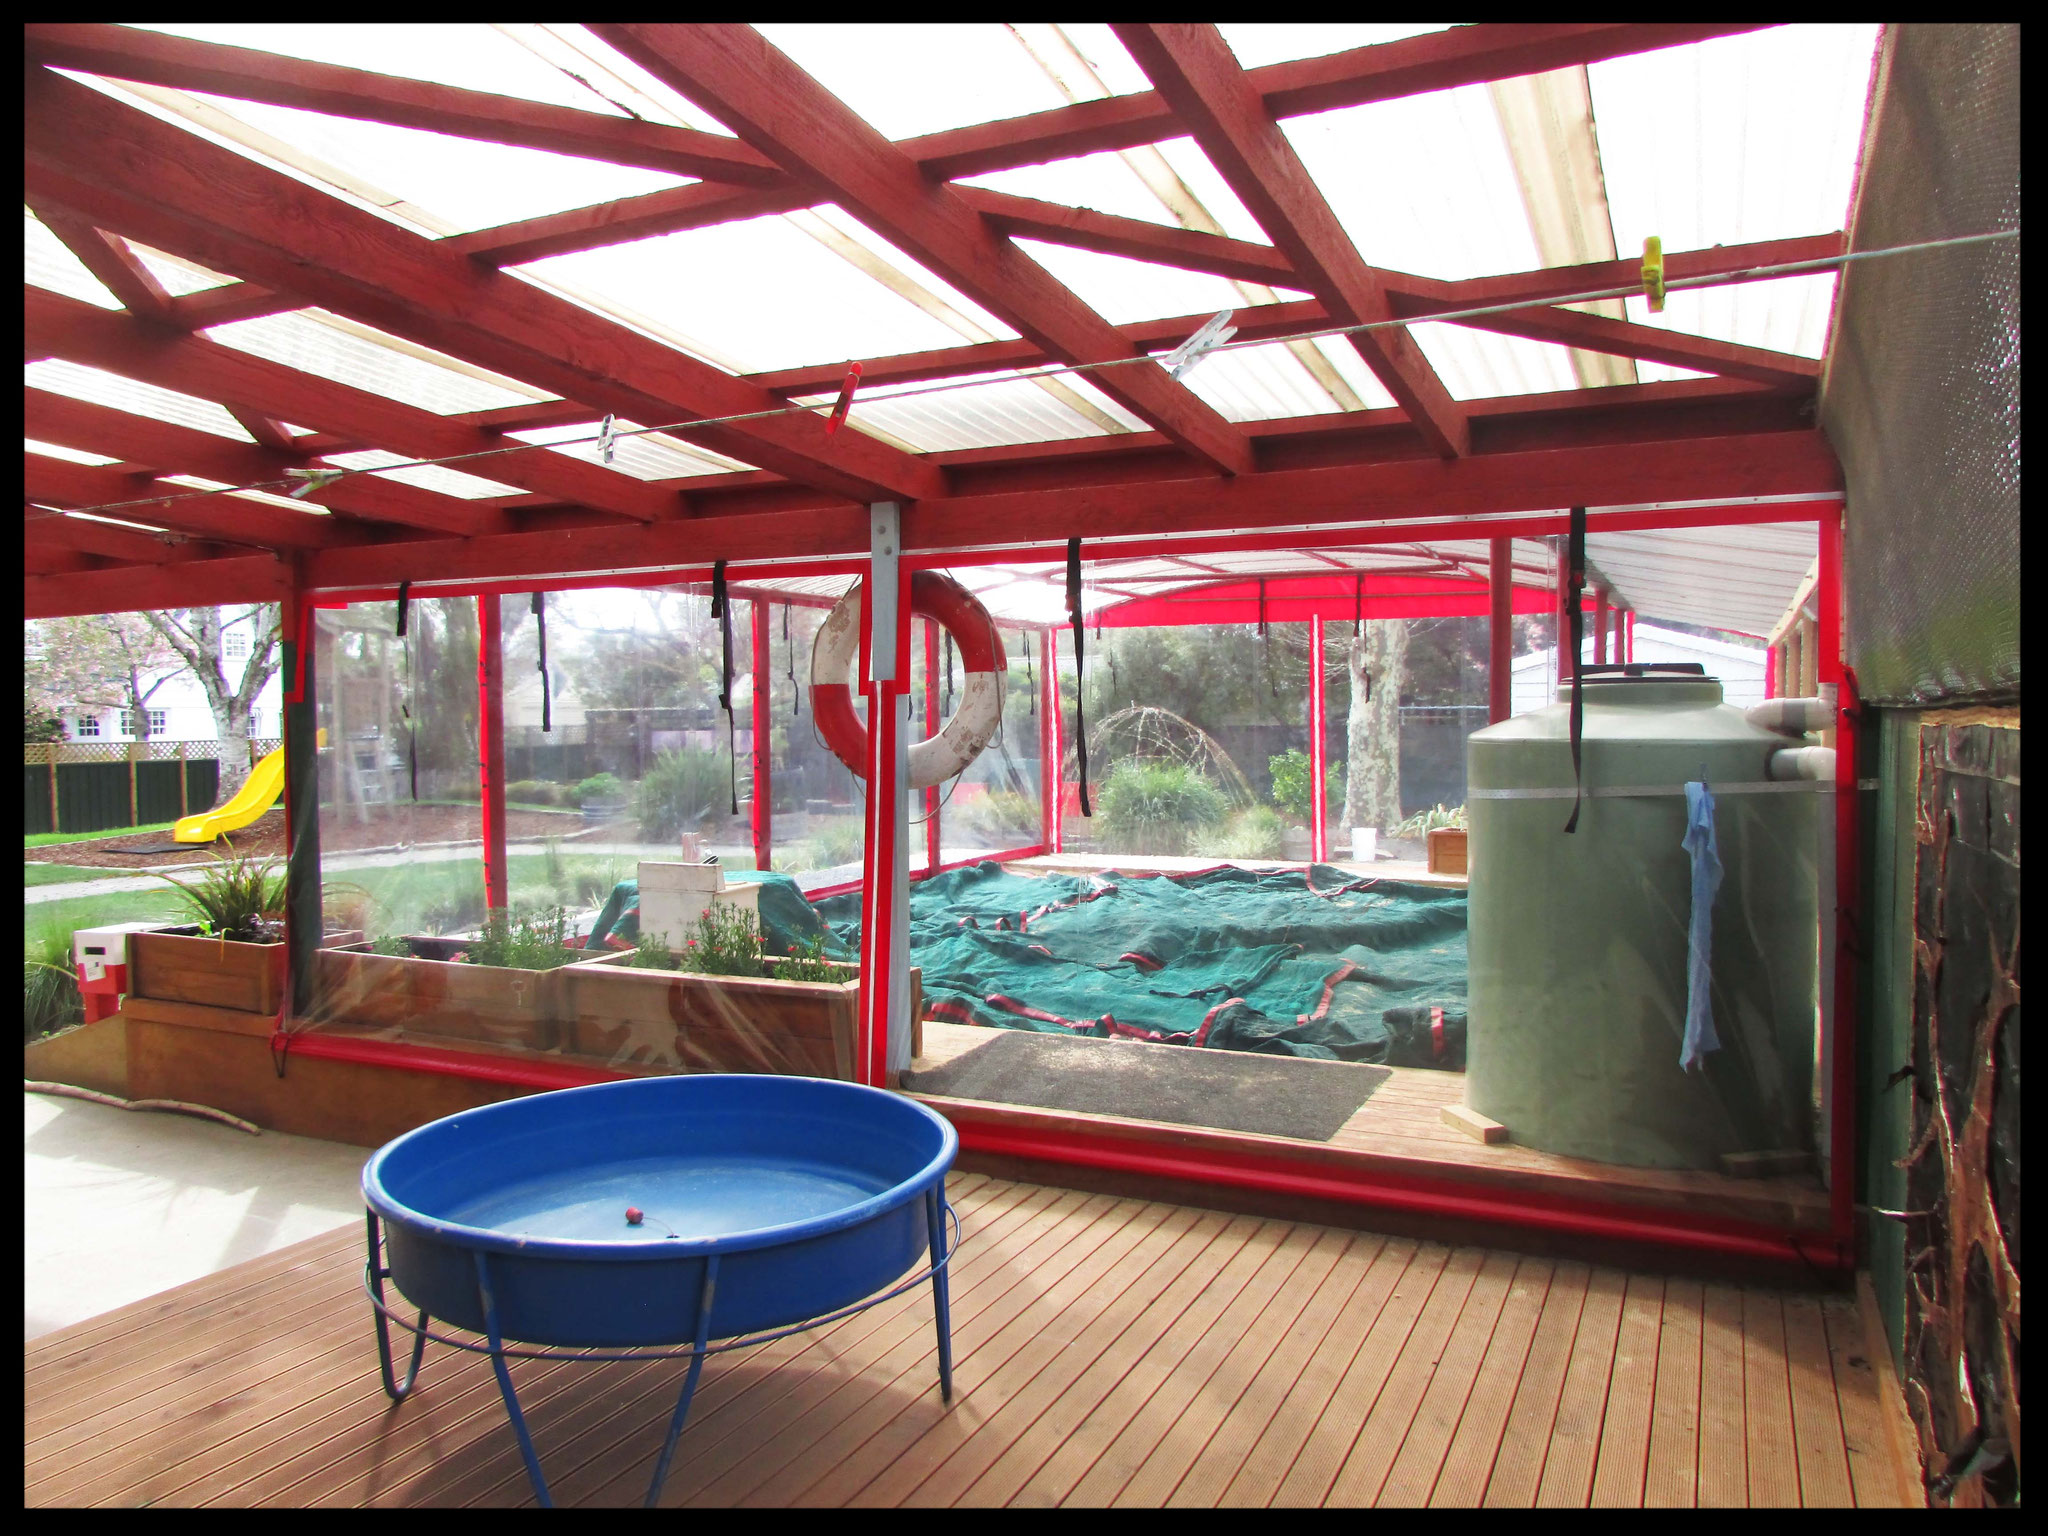 Sandpit Playroom, Springlands Kindergarten, Blenheim